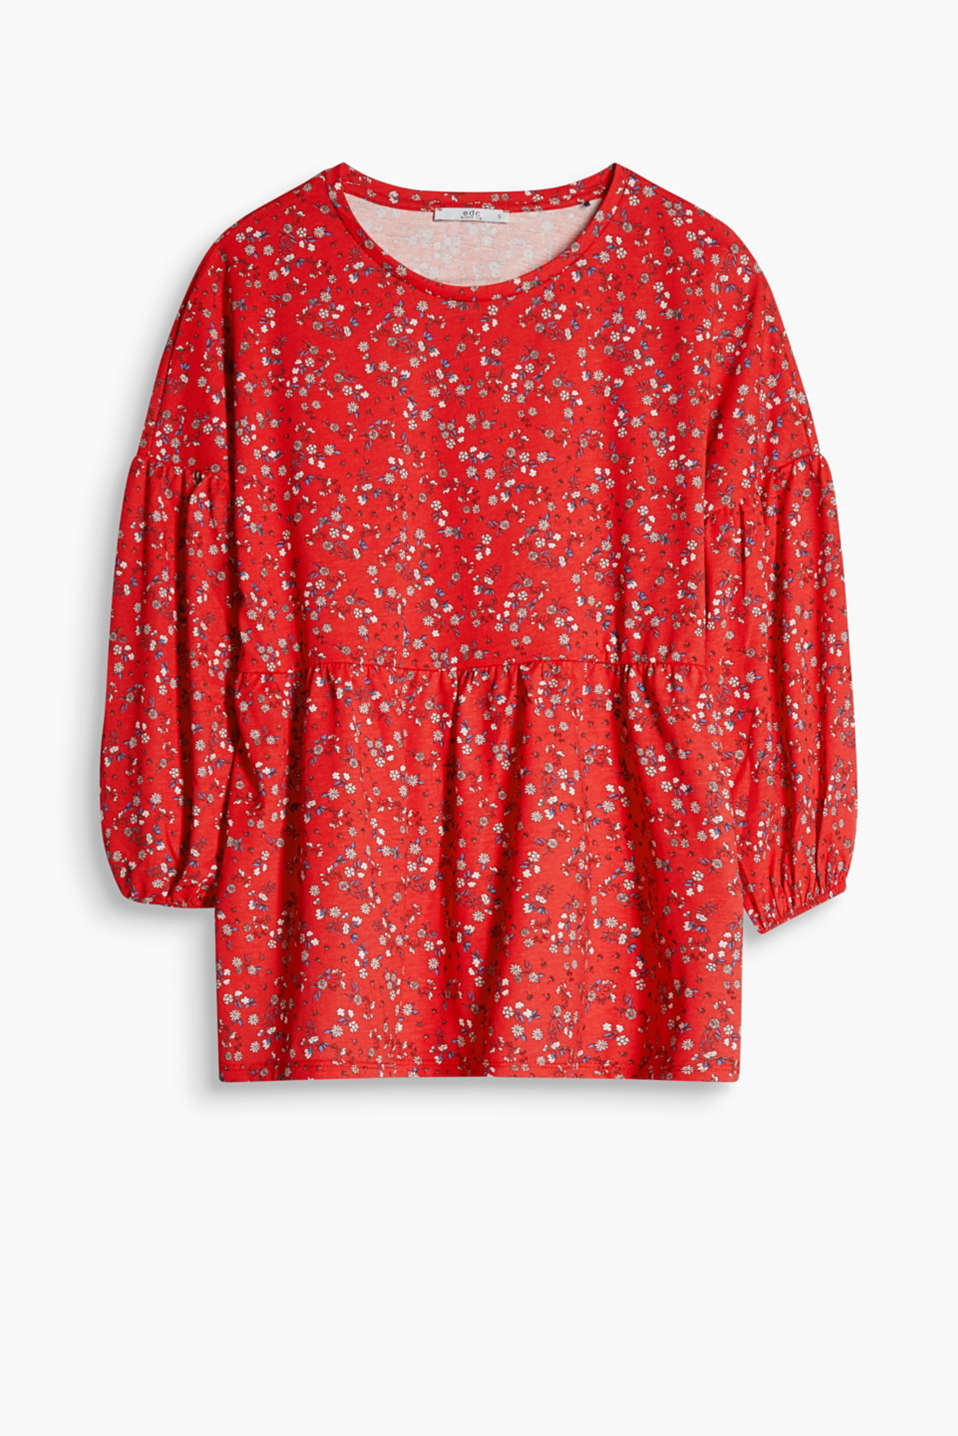 Feminine boxy top with a flounce and a floral or polka dot print, in pure cotton